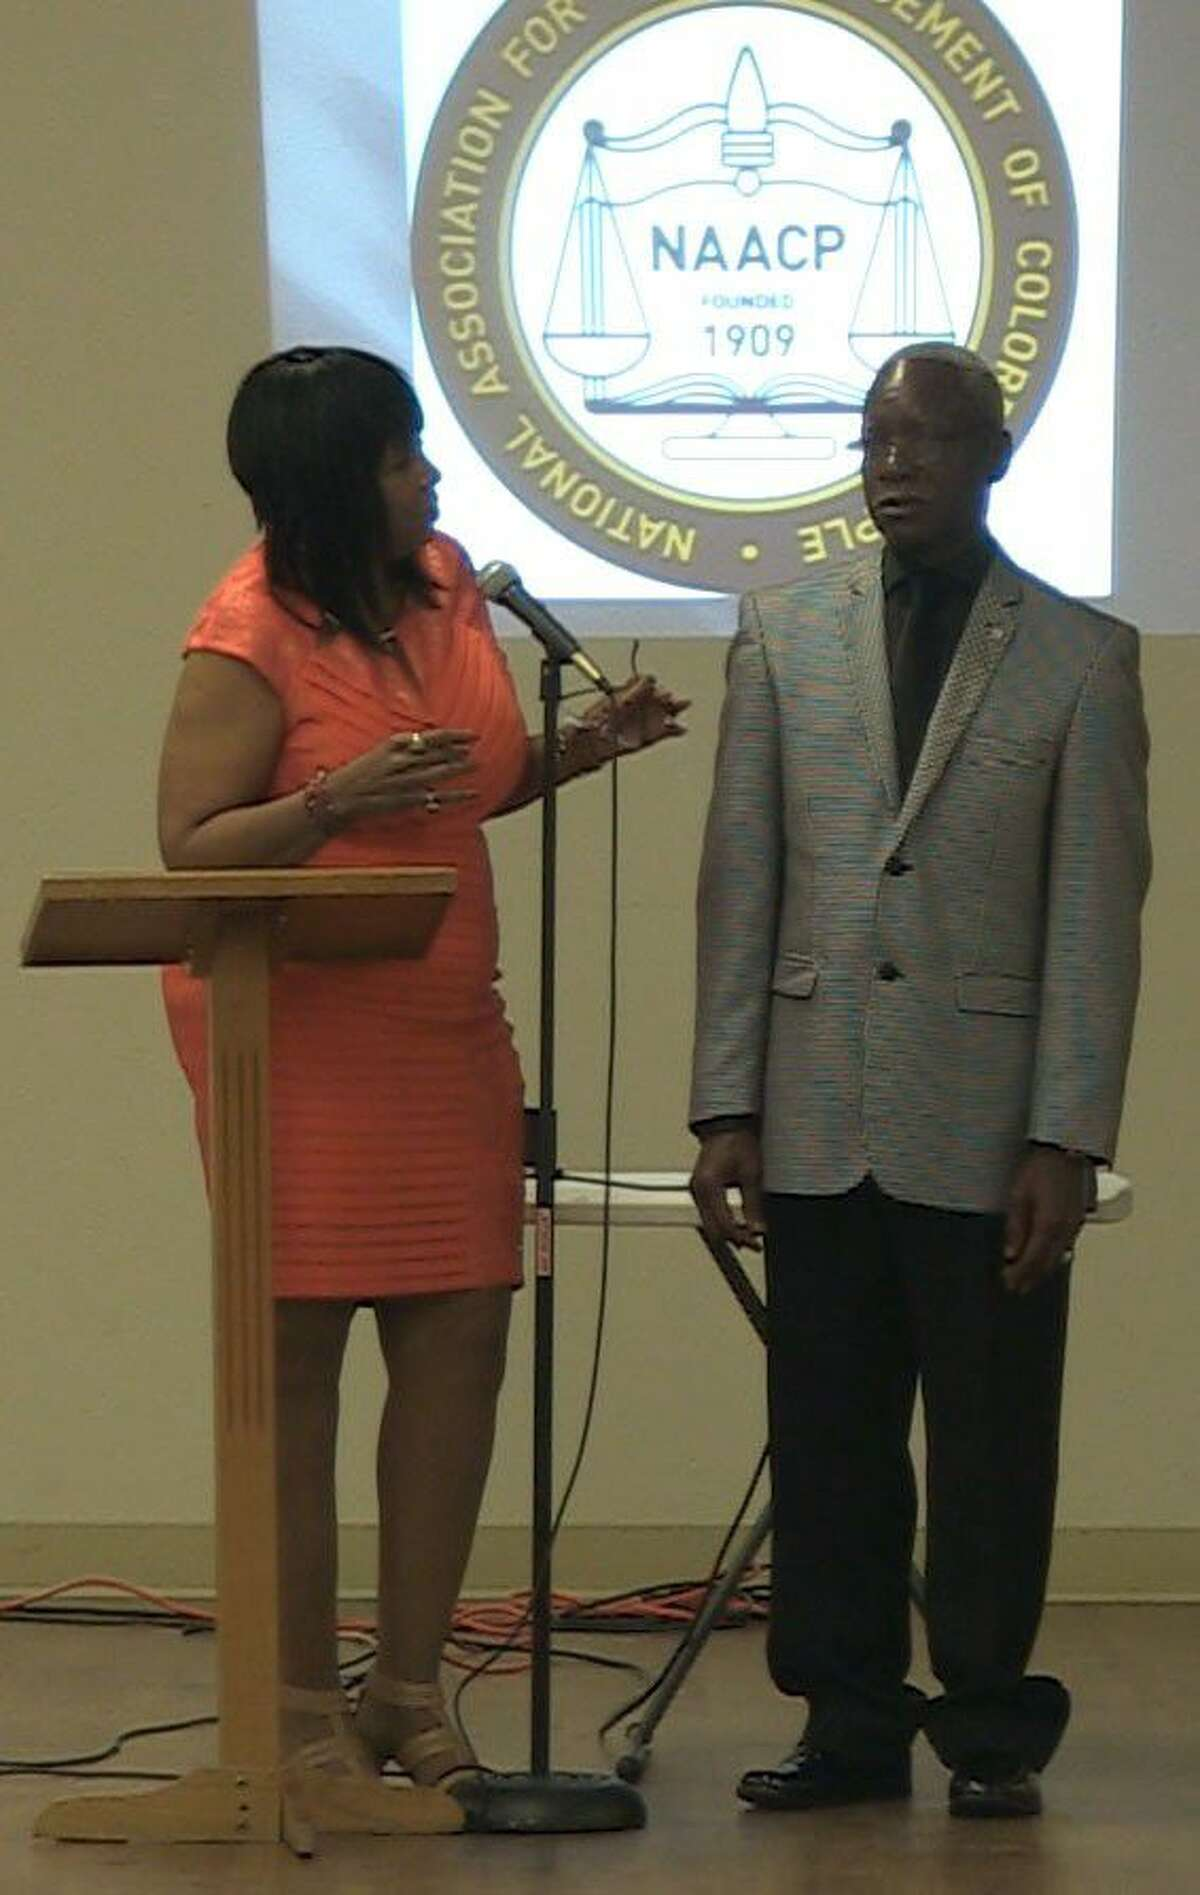 The NAACP also honored Johnny Jones of Tamina, whose portrait now hangs in the Smithsonian's National Portrait Gallery.